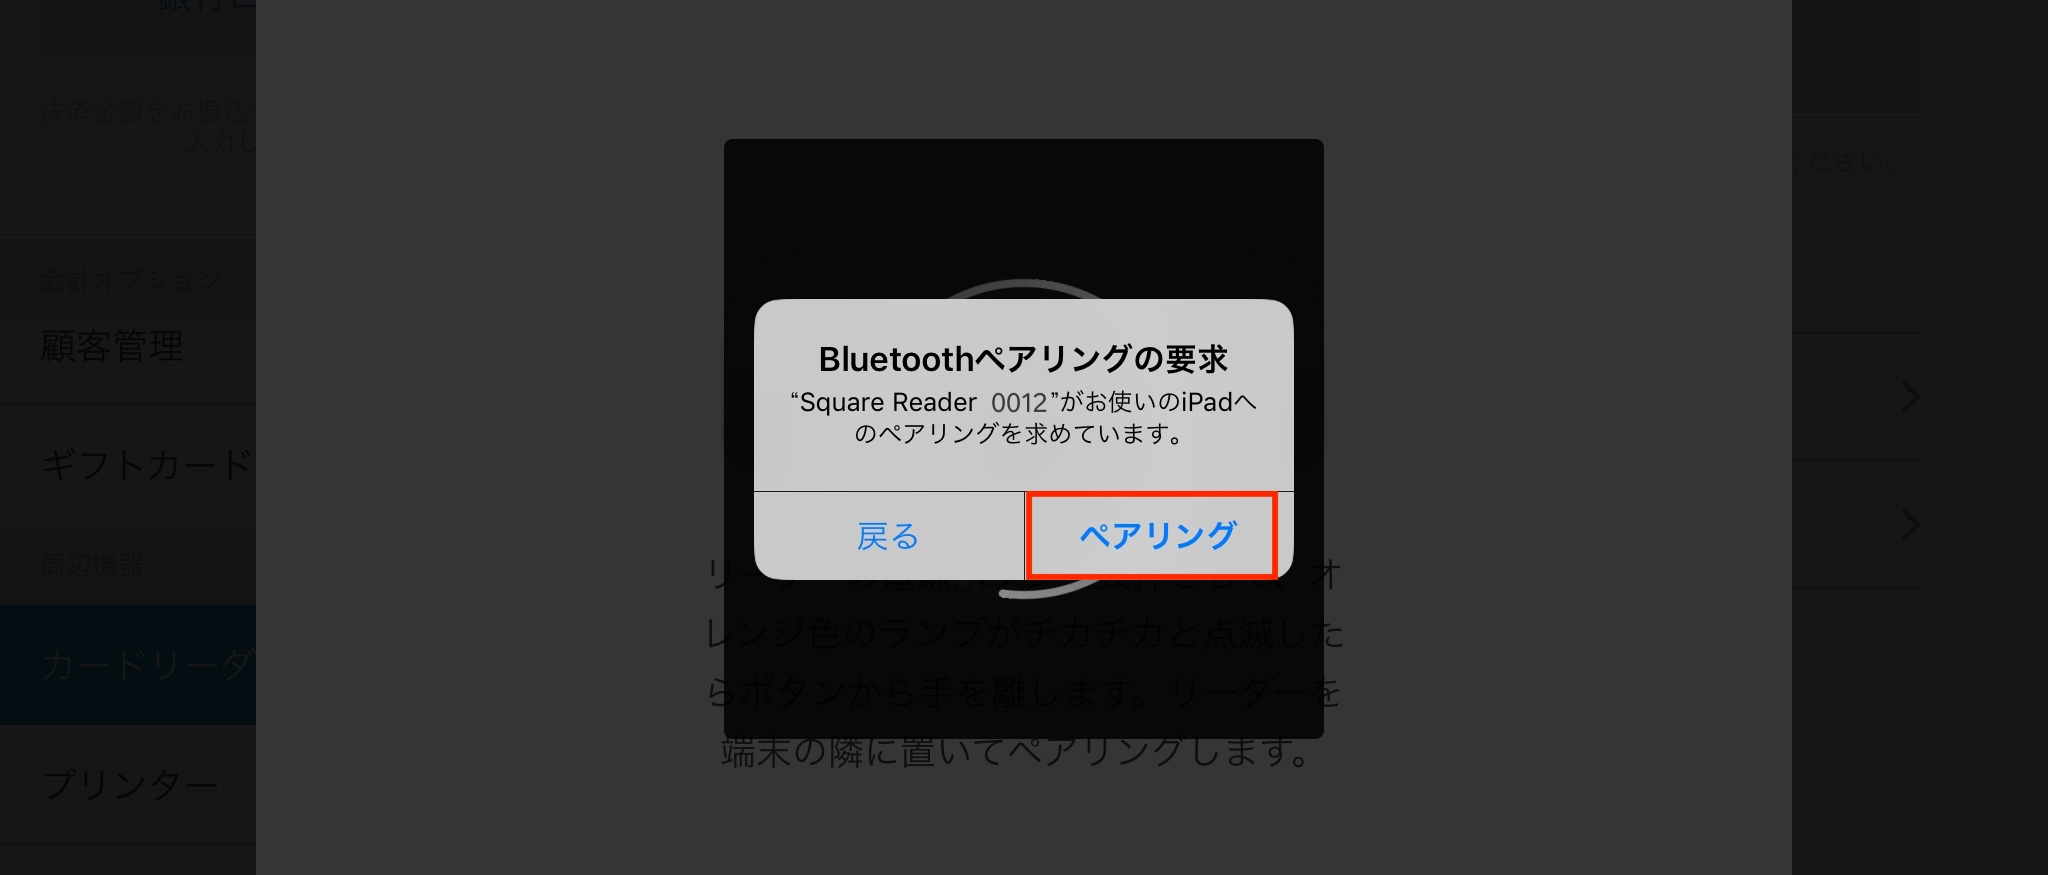 JP R12 Confirm the bluetooth pairing request